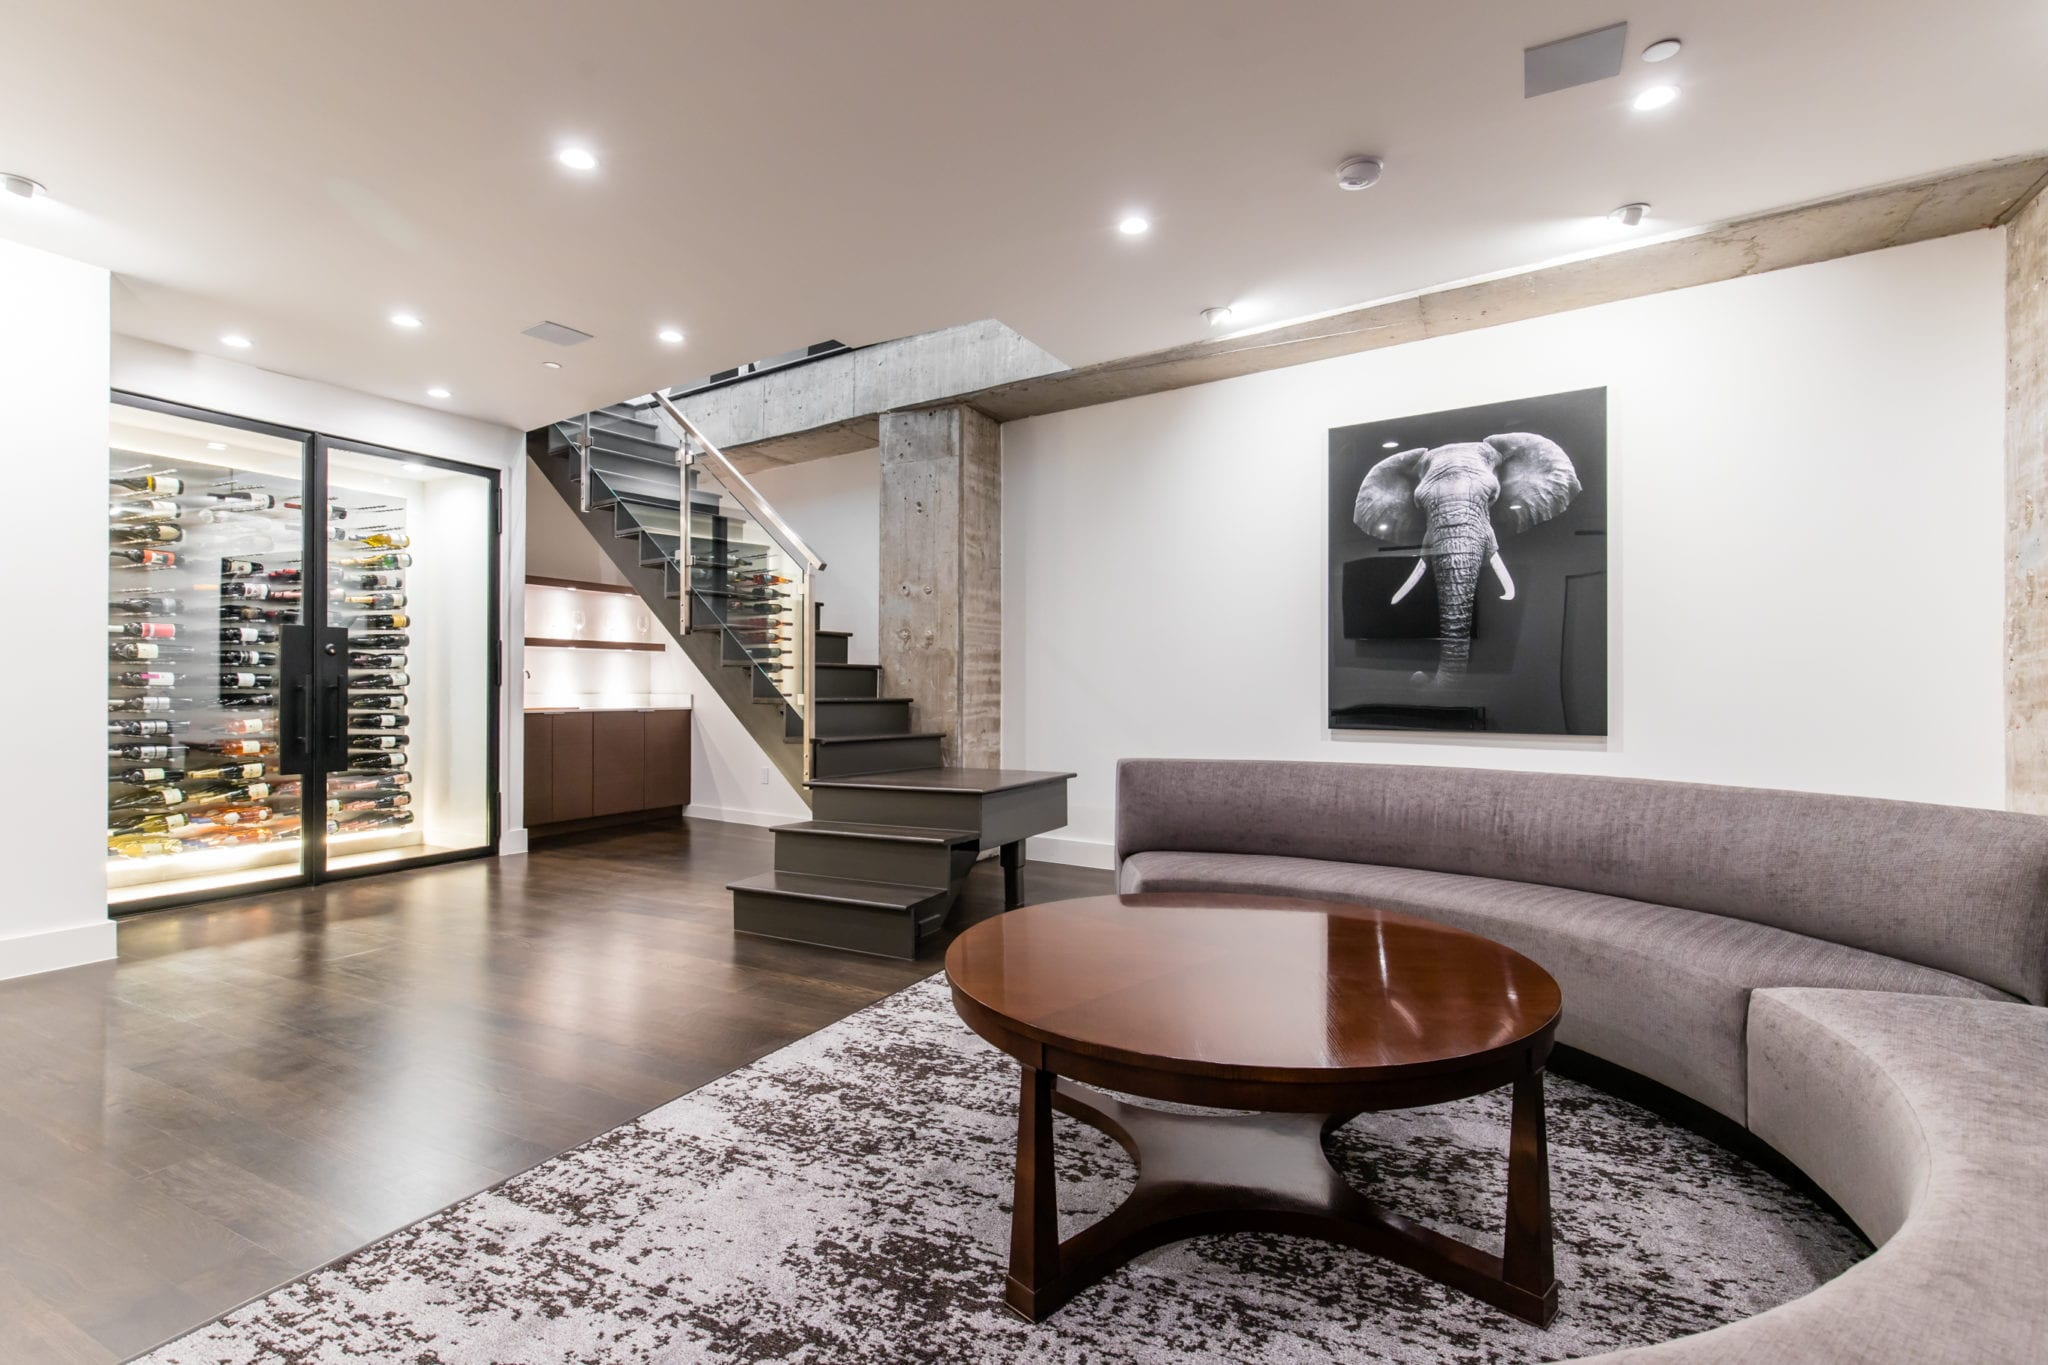 2021 Award Winning High-Rise Condo Remodel by Renowned Renovation